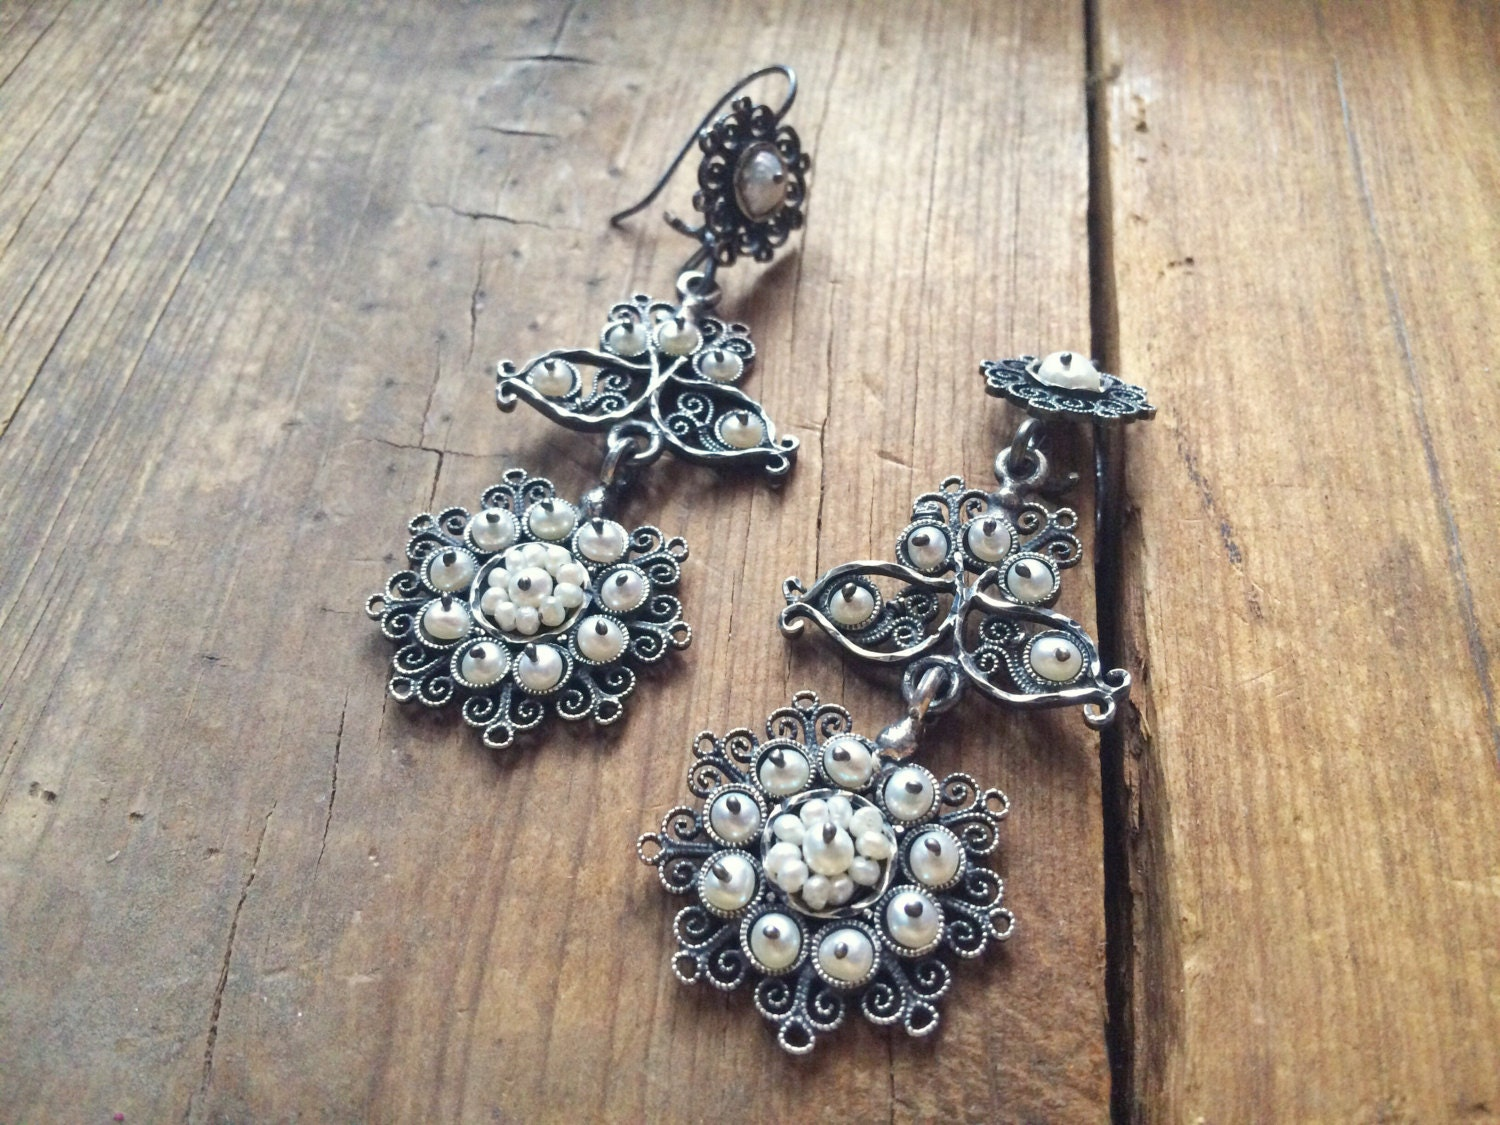 Vintage mexican silver filigree chandelier earrings with natural vintage mexican silver filigree chandelier earrings with natural pearls spanish colonial style mozeypictures Images